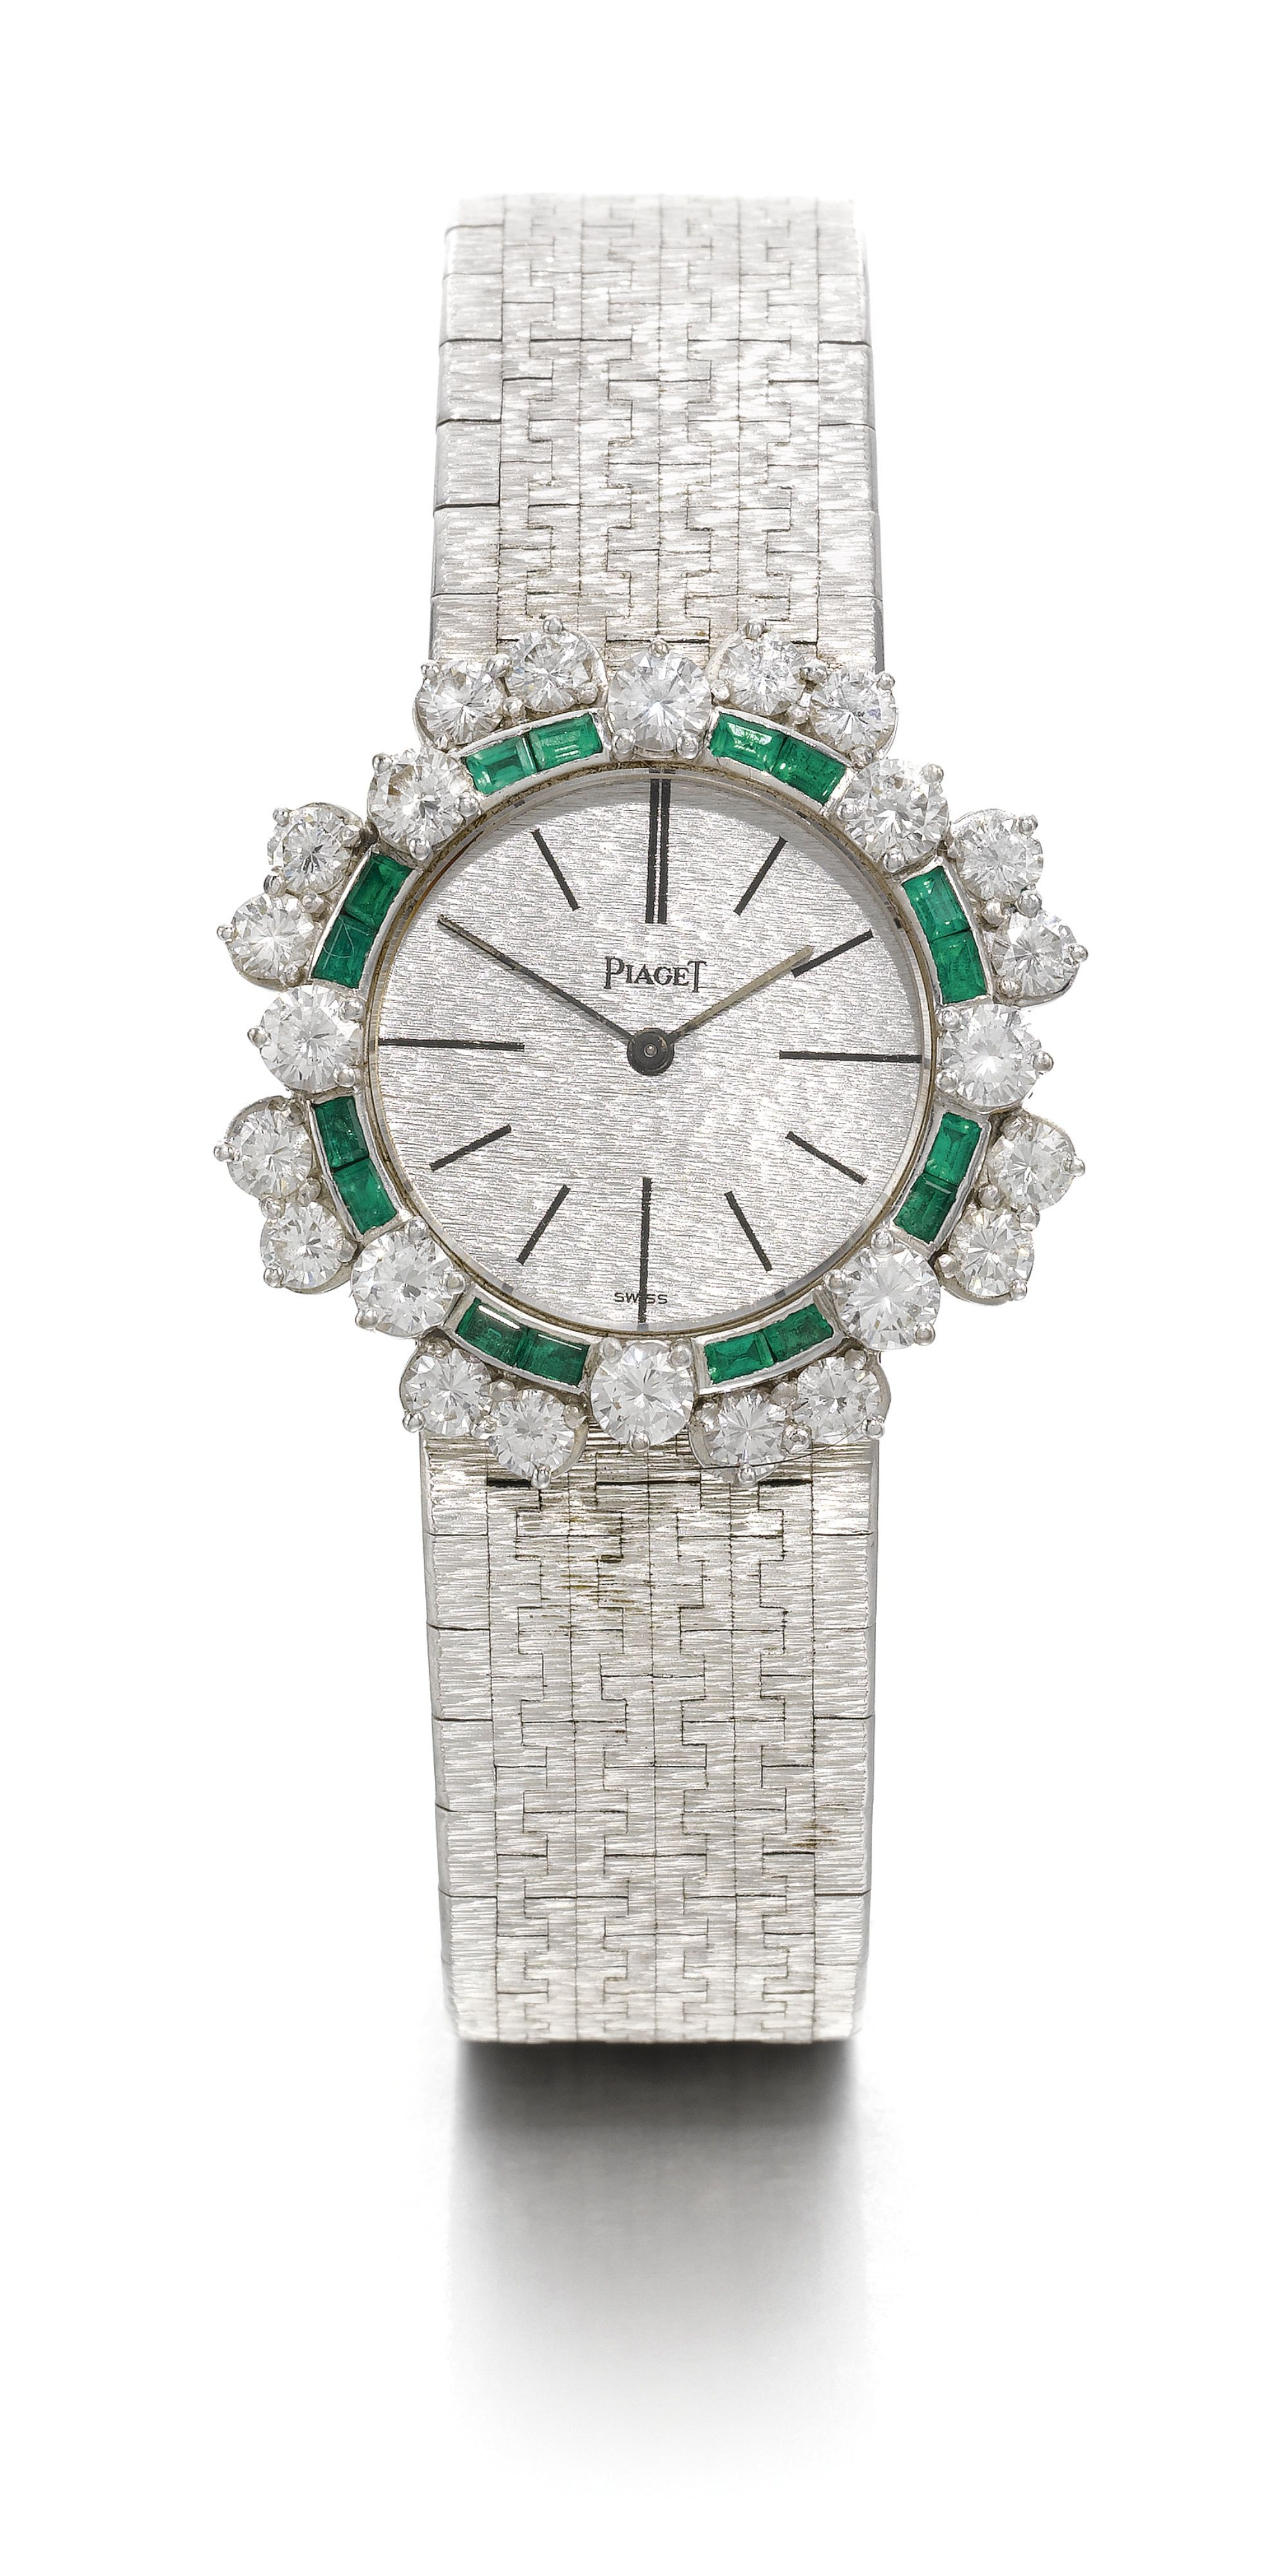 i dalliance baselworld libertine watch female faberge collectors faberg lady emerald watches wows